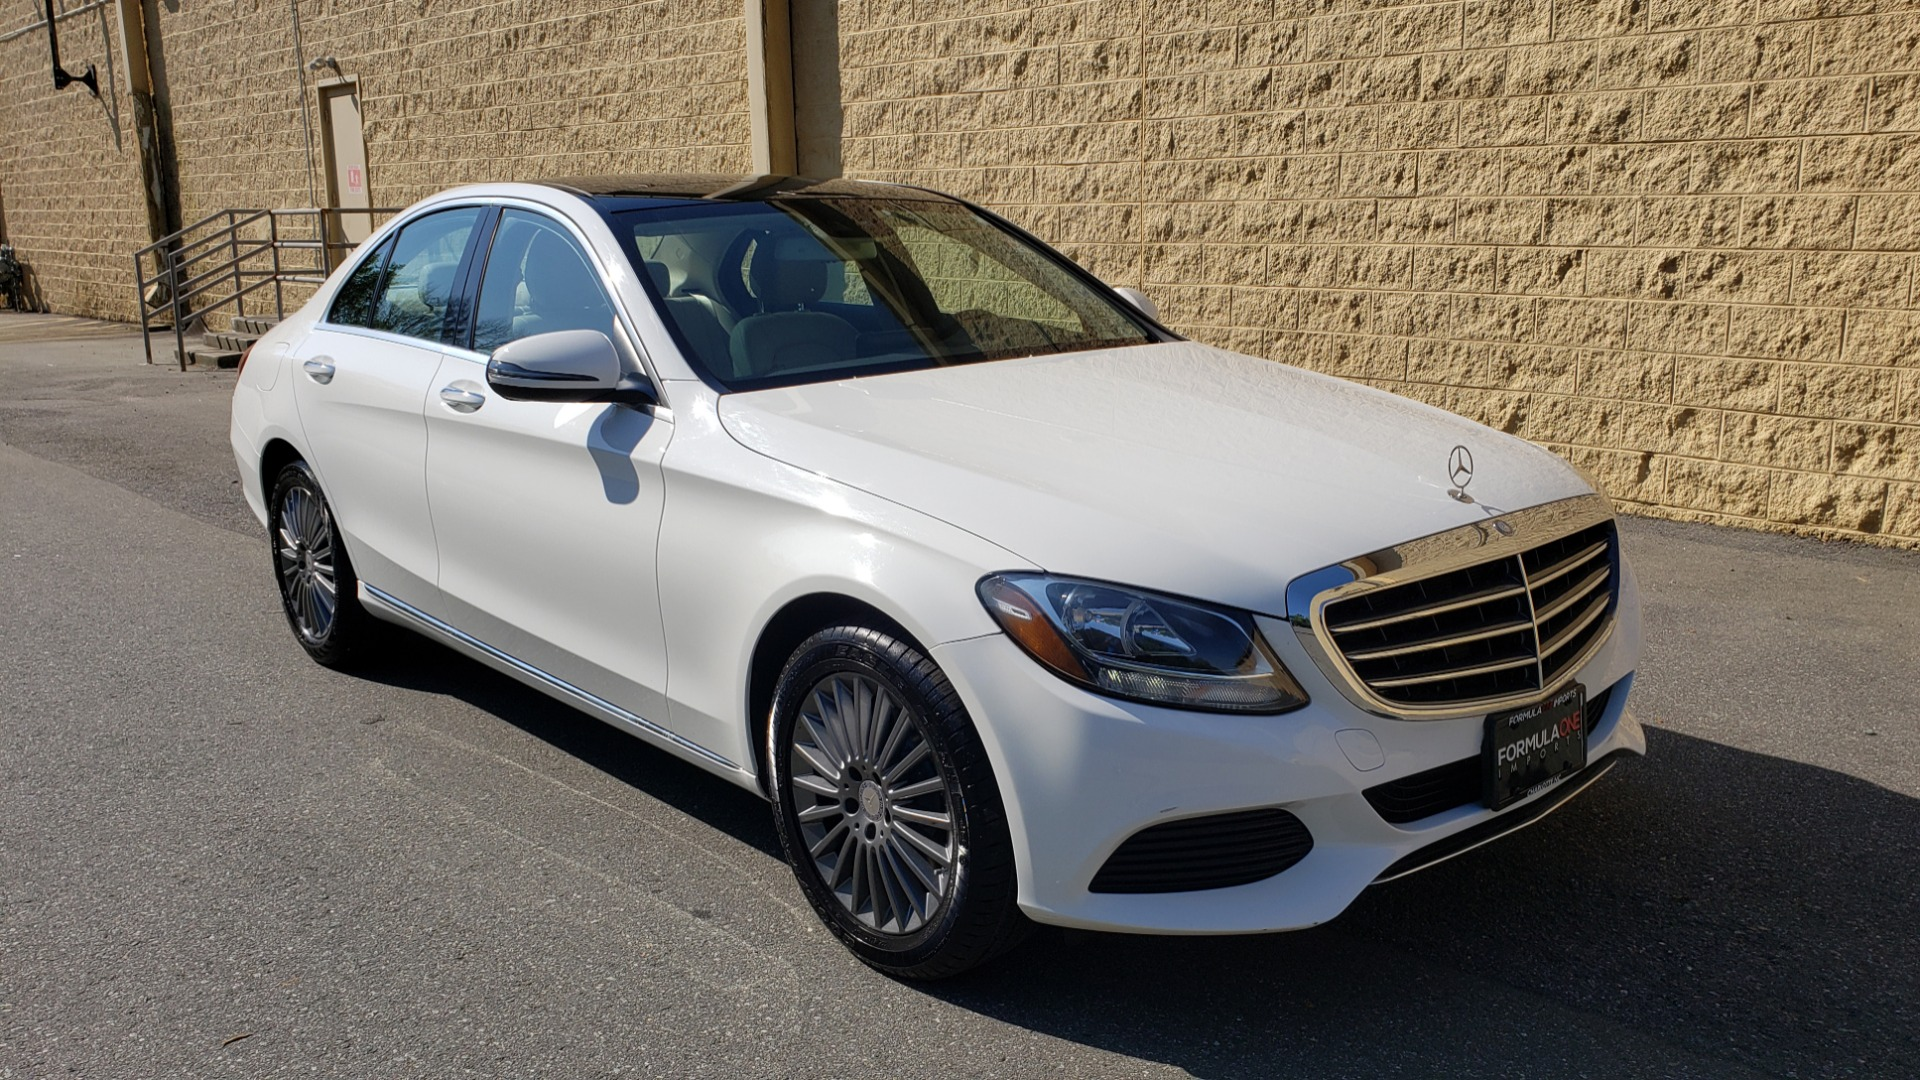 Used 2016 Mercedes-Benz C-Class C 300 LUXURY / NAV / PANO-ROOF / REARVIEW / BSM / HTD STS for sale Sold at Formula Imports in Charlotte NC 28227 4